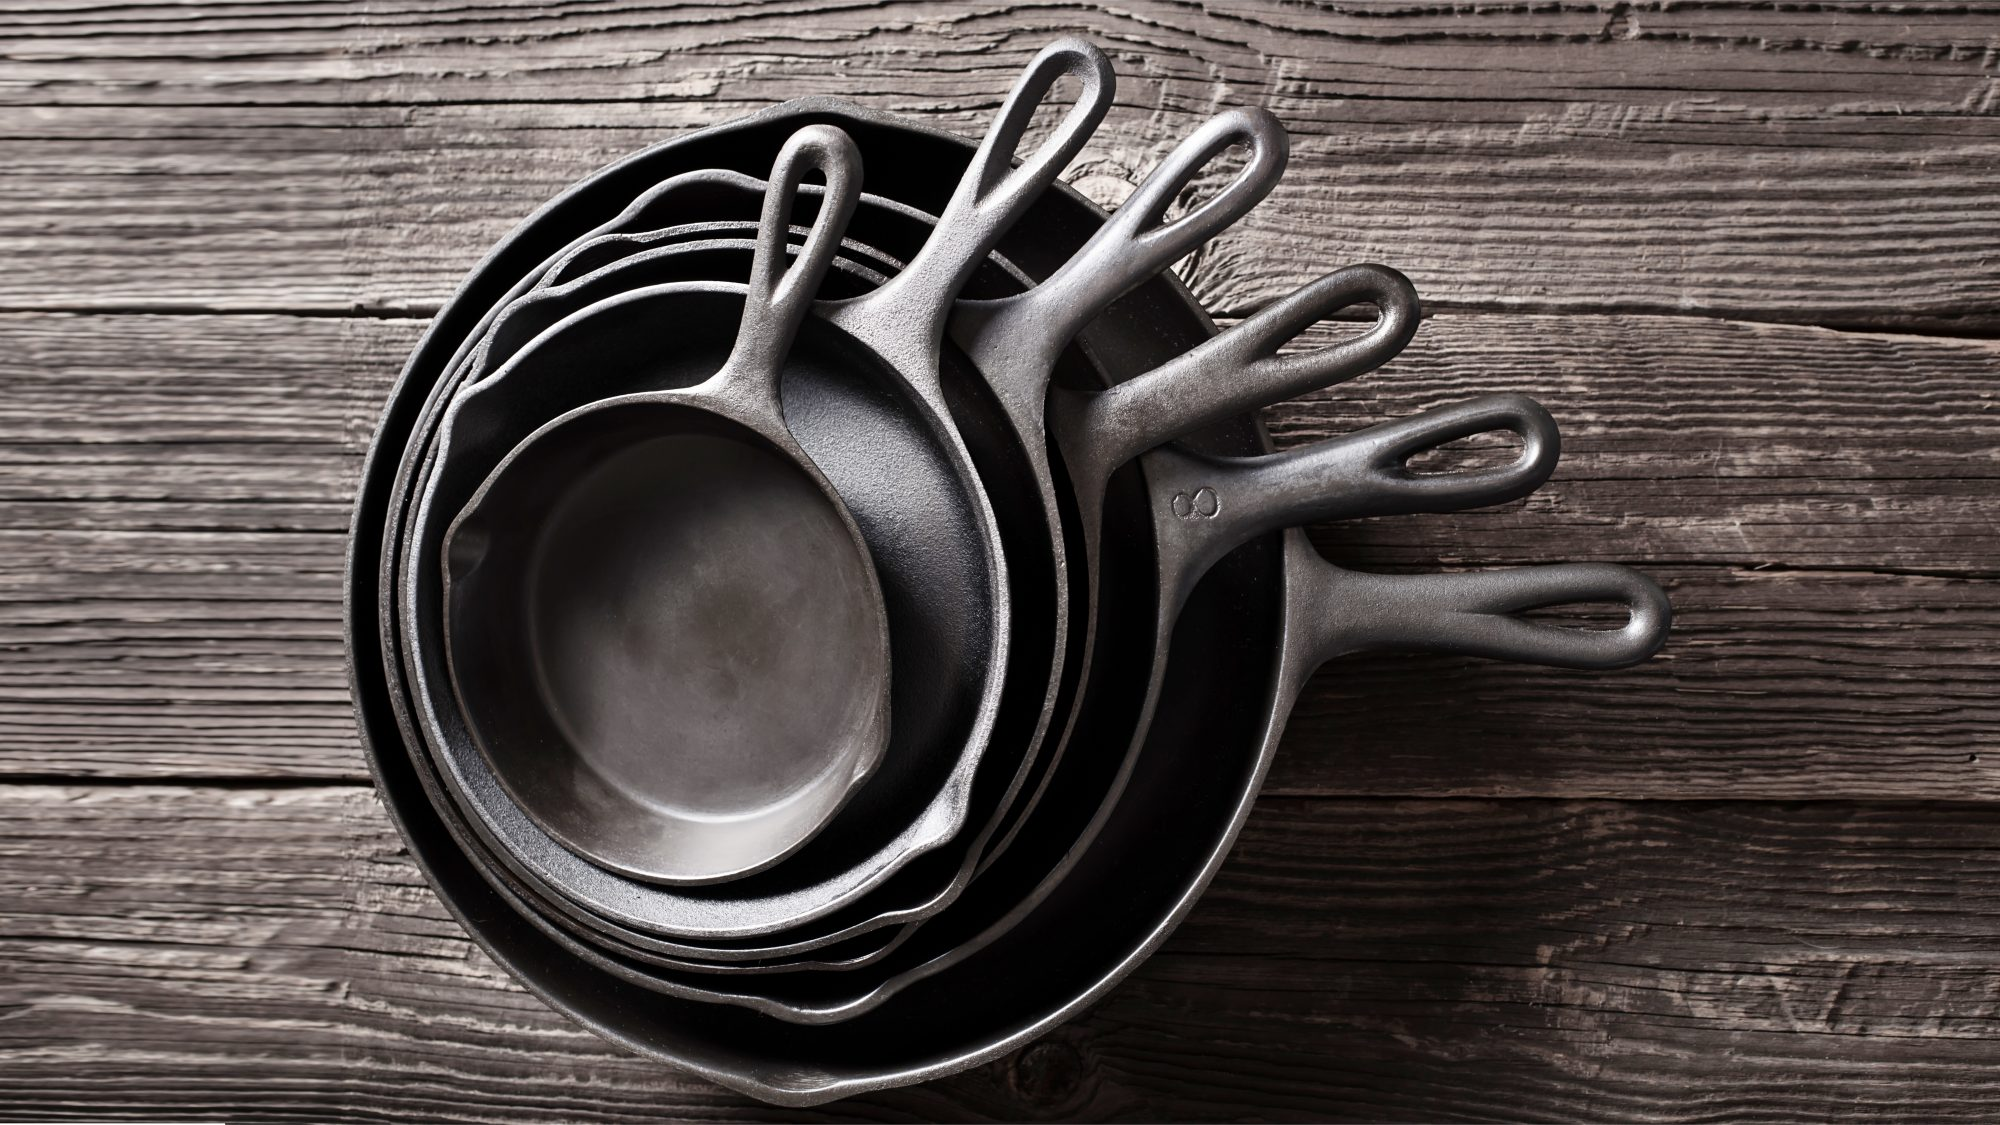 How to season and clean cast iron skillets - guide, video, and steps